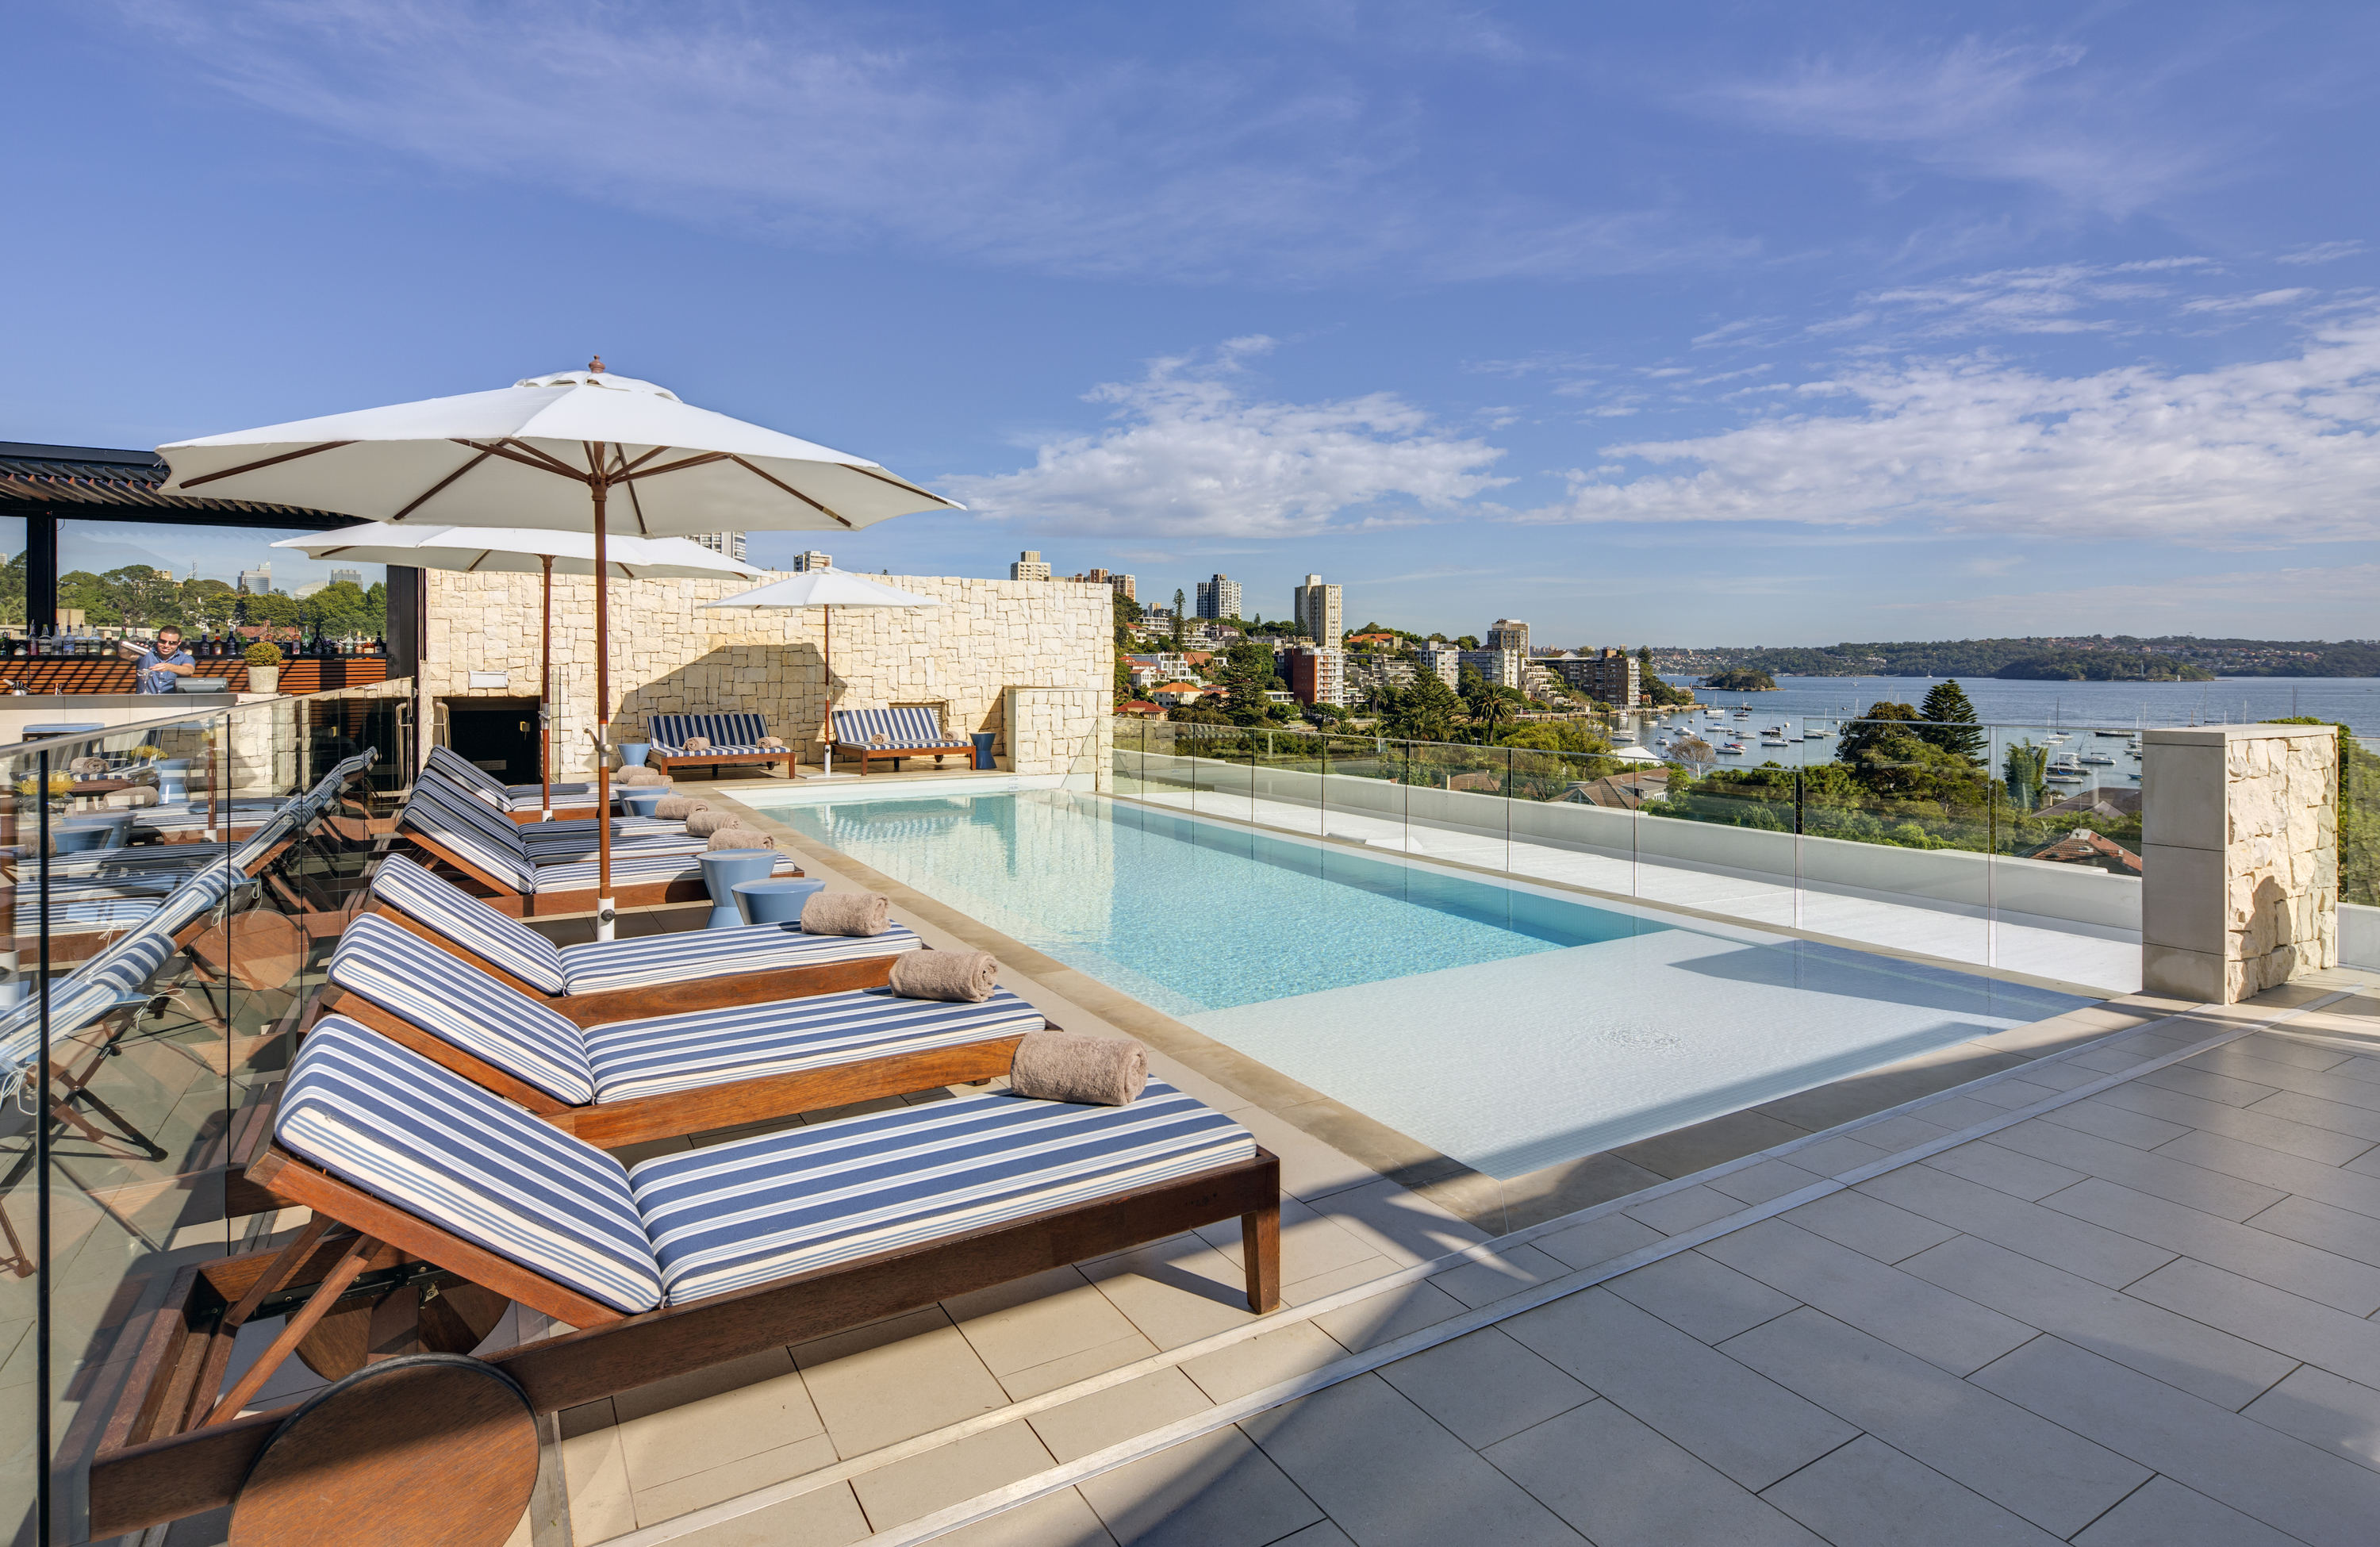 How soon can you swim in a rooftop pool?